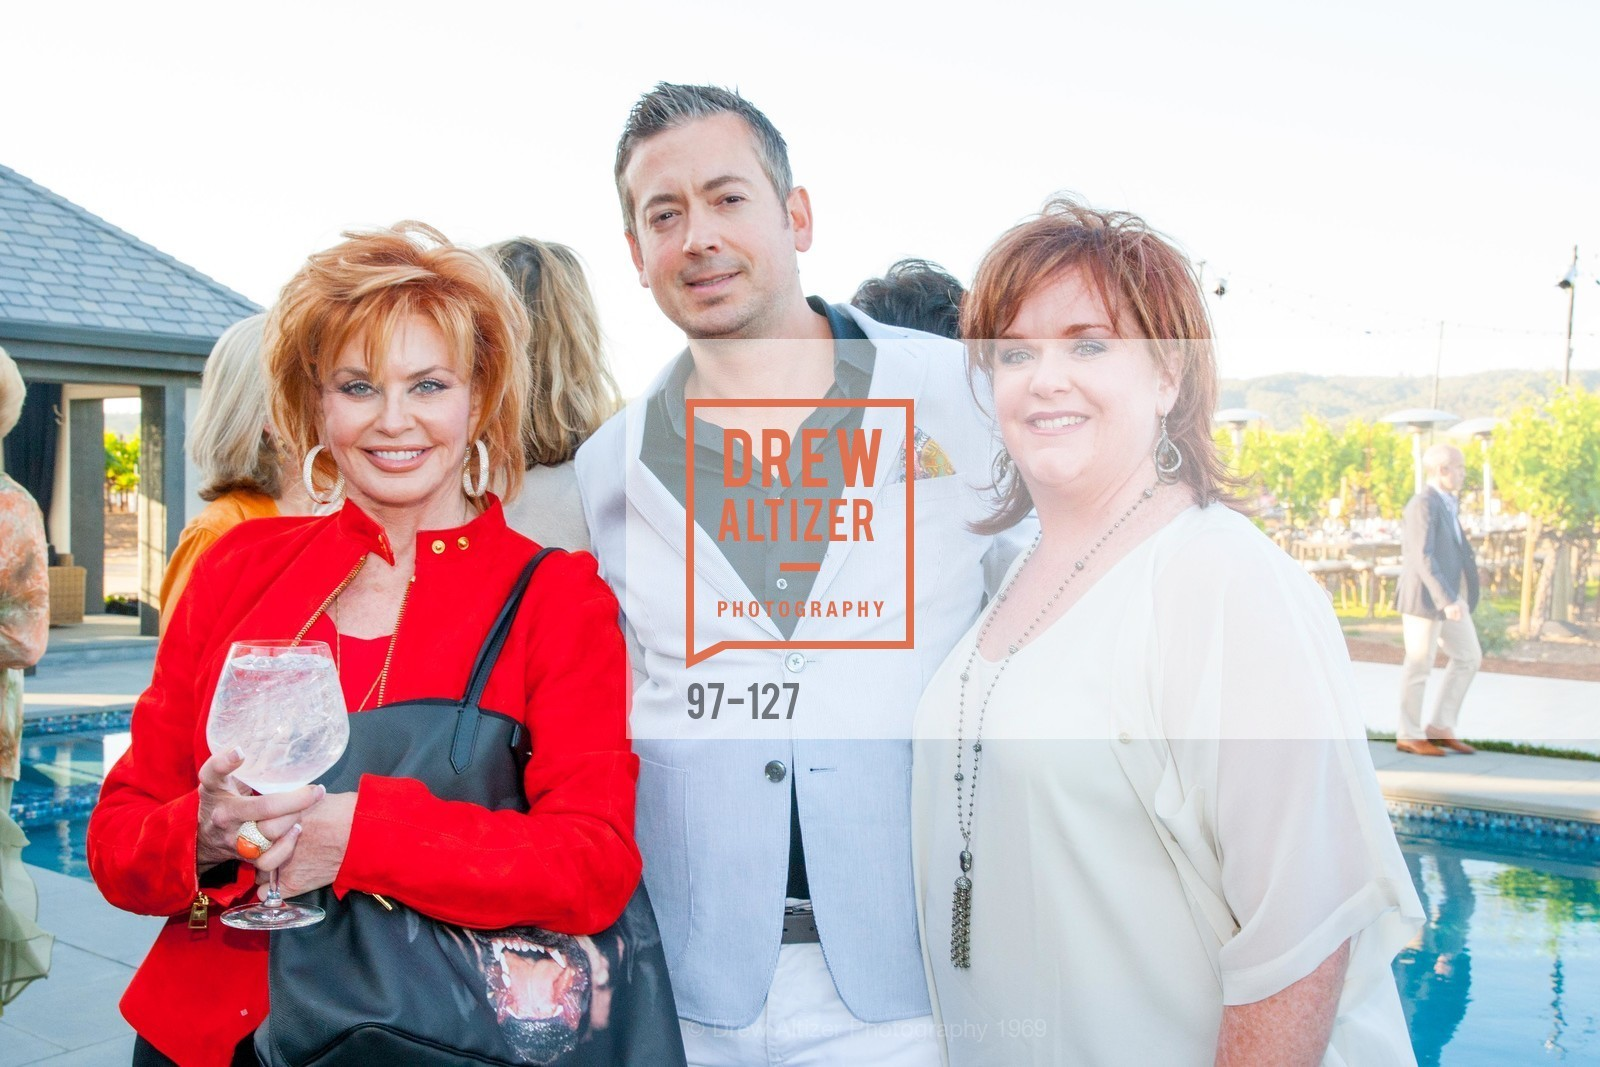 Vicky Walters, Chris Stubstad, Wendy Walters, An Evening in the Vineyard hosted by JACK CALHOUN & TRENT NORRIS, Jack Calhoun & Trent Norris Vineyard. 3393 Dry Creek Road, Healdsburg CA 95448, May 22nd, 2015,Drew Altizer, Drew Altizer Photography, full-service agency, private events, San Francisco photographer, photographer california